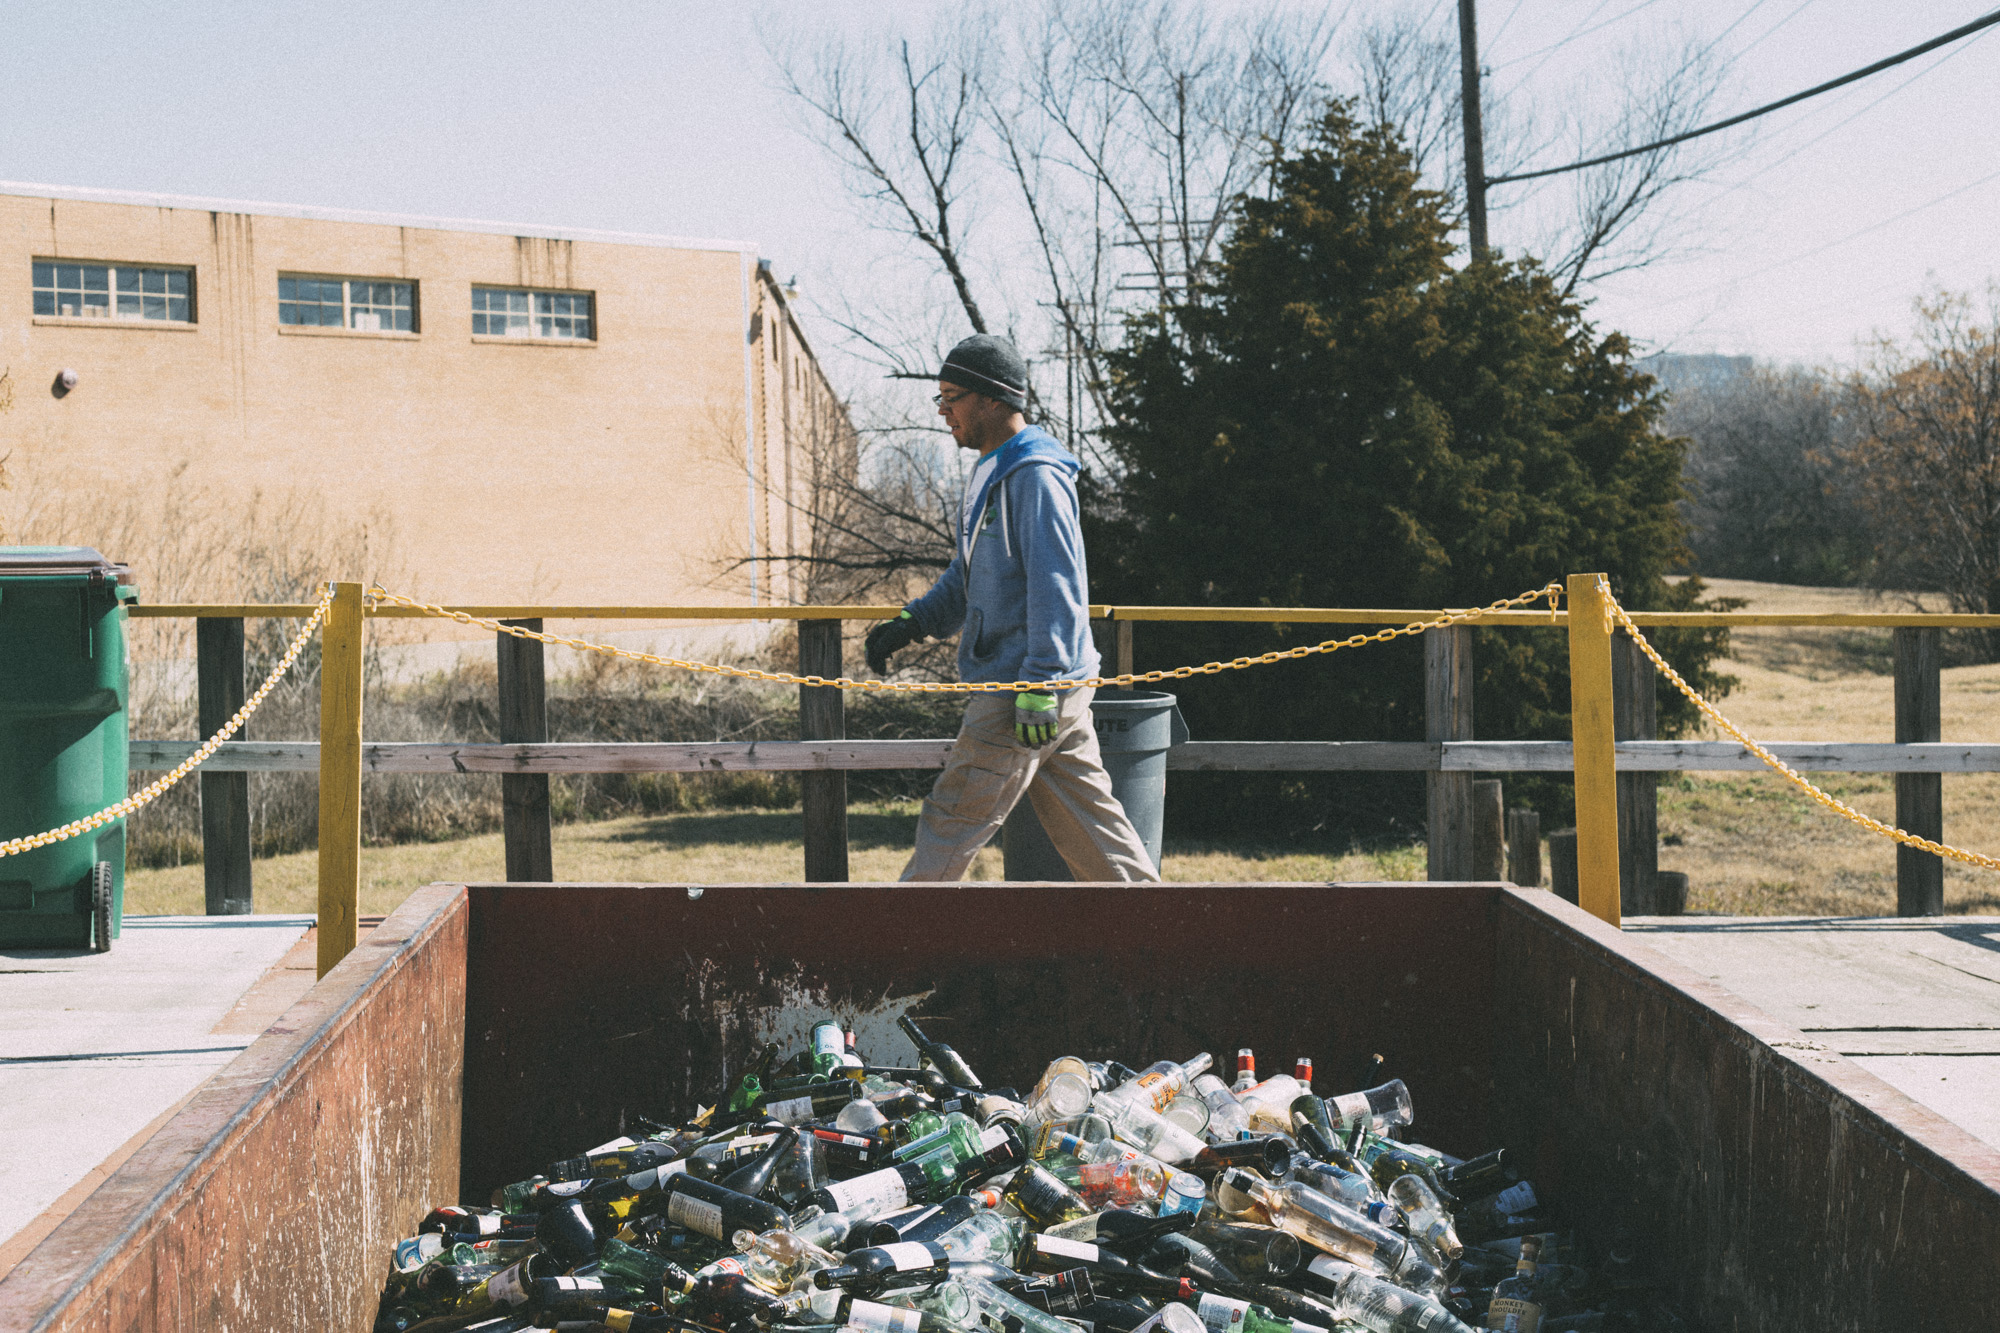 WHAT'S IN IT FOR THE BARS? Landfilling glass bottles is cheaper and easier than recycling them, which requires employee training, increased space demands (for separate containers), and additional pick-up fees. Recycling can feel good, but is that enough?